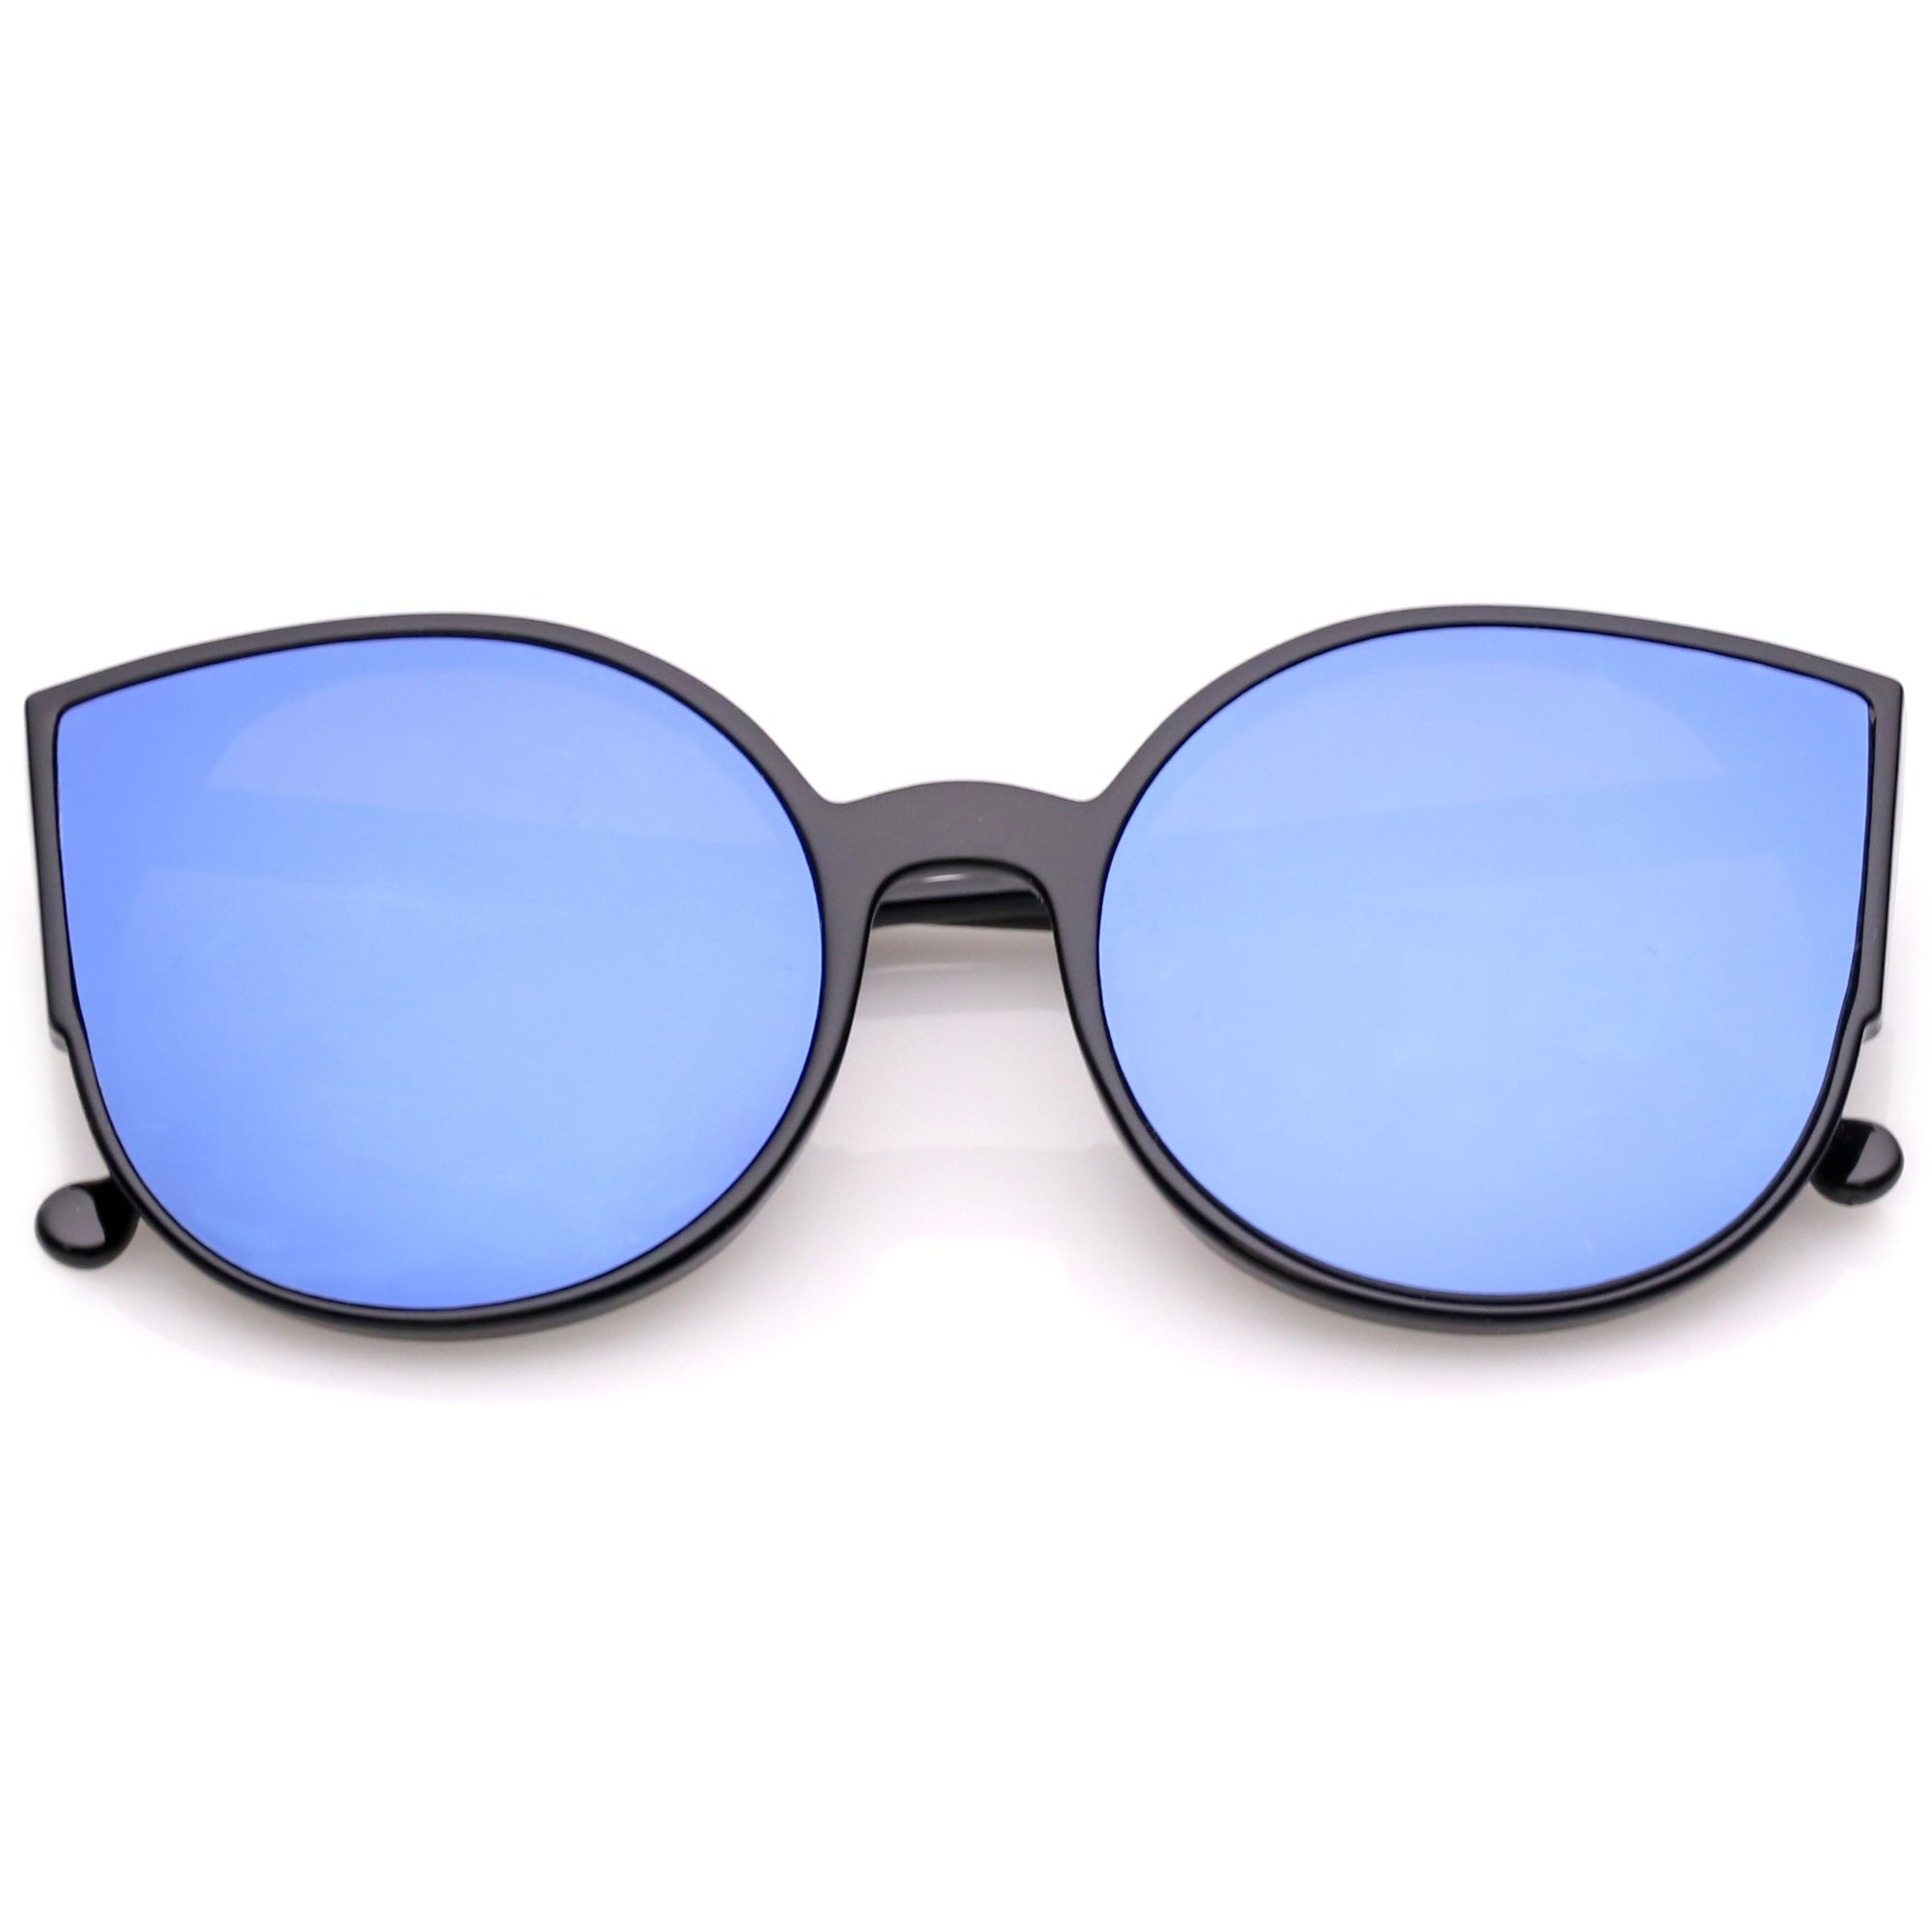 809ce9f538eb Black Blue Mirror · Clear Silver Mirror · Black Silver Mirror · Tortoise  Gold Mirror · Women s Oversize Mirrored Flat Infinity Lens Sunglasses A940